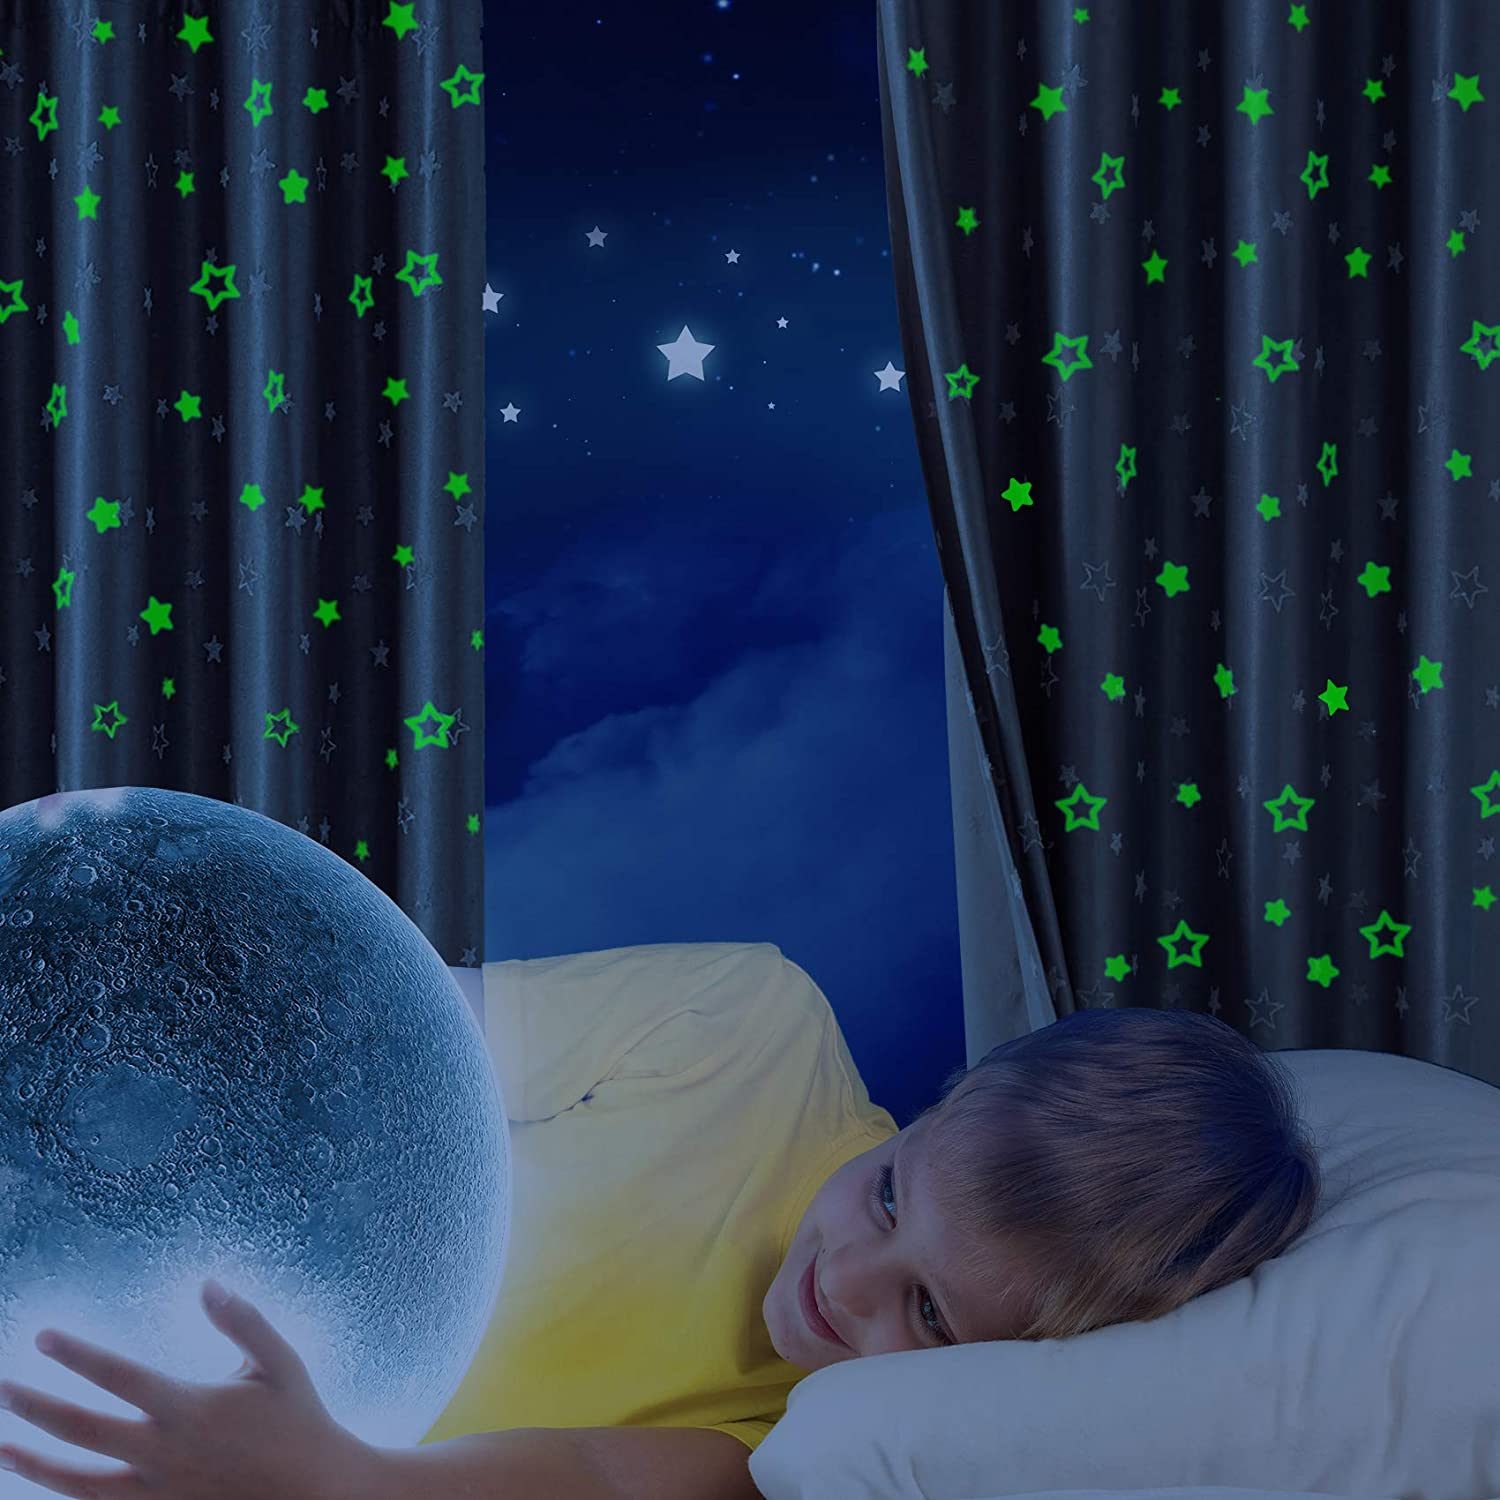 Hughapy Glow in The Dark Curtains Star Blackout Curtain Thermal Insulated Grommet Window Curtains for Kids Bedroom,2 Panels (52 x 63 Inch, Grey)